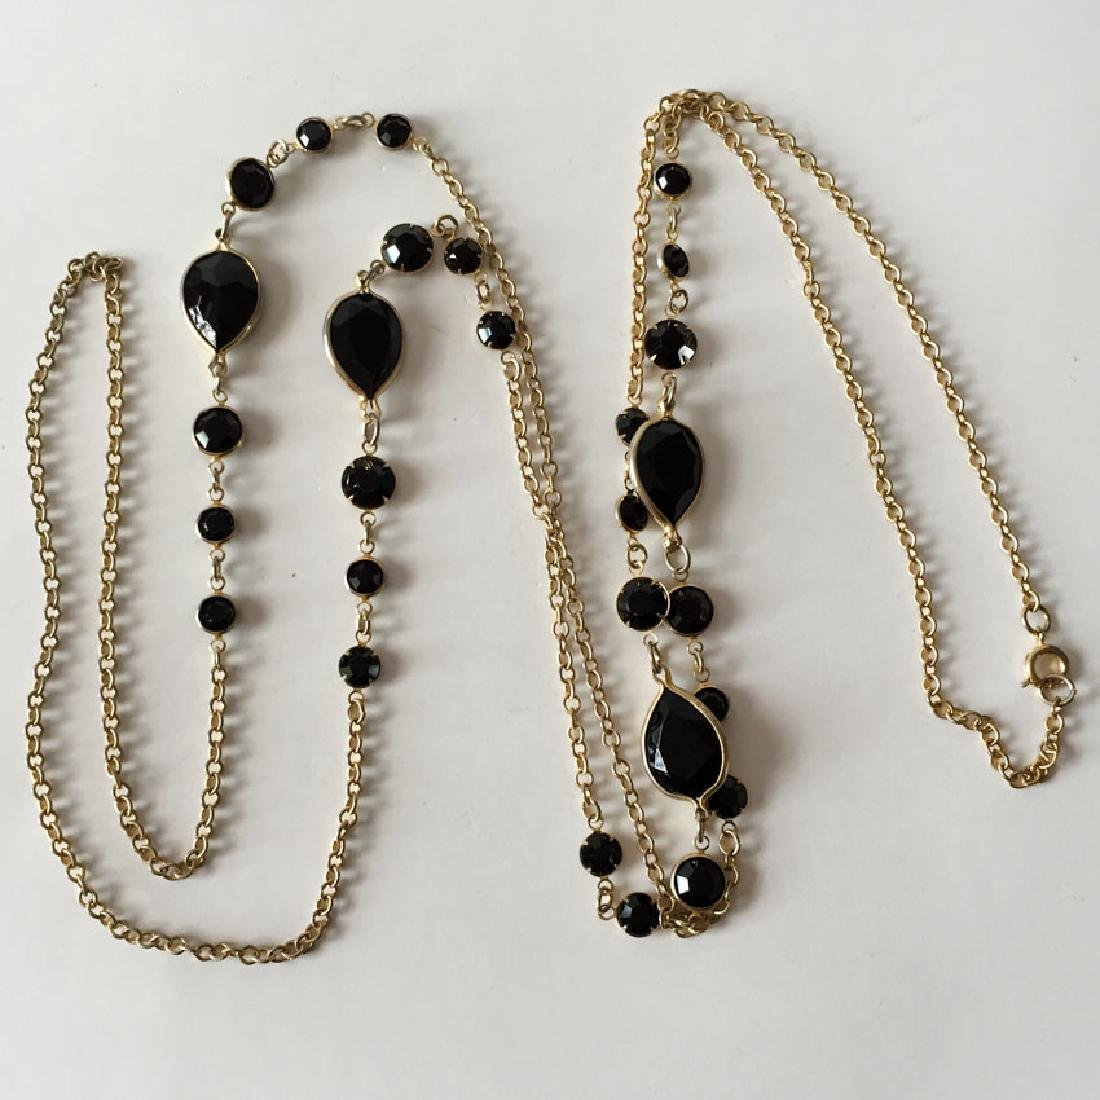 Vintage gold plated chain with faceted black onyx